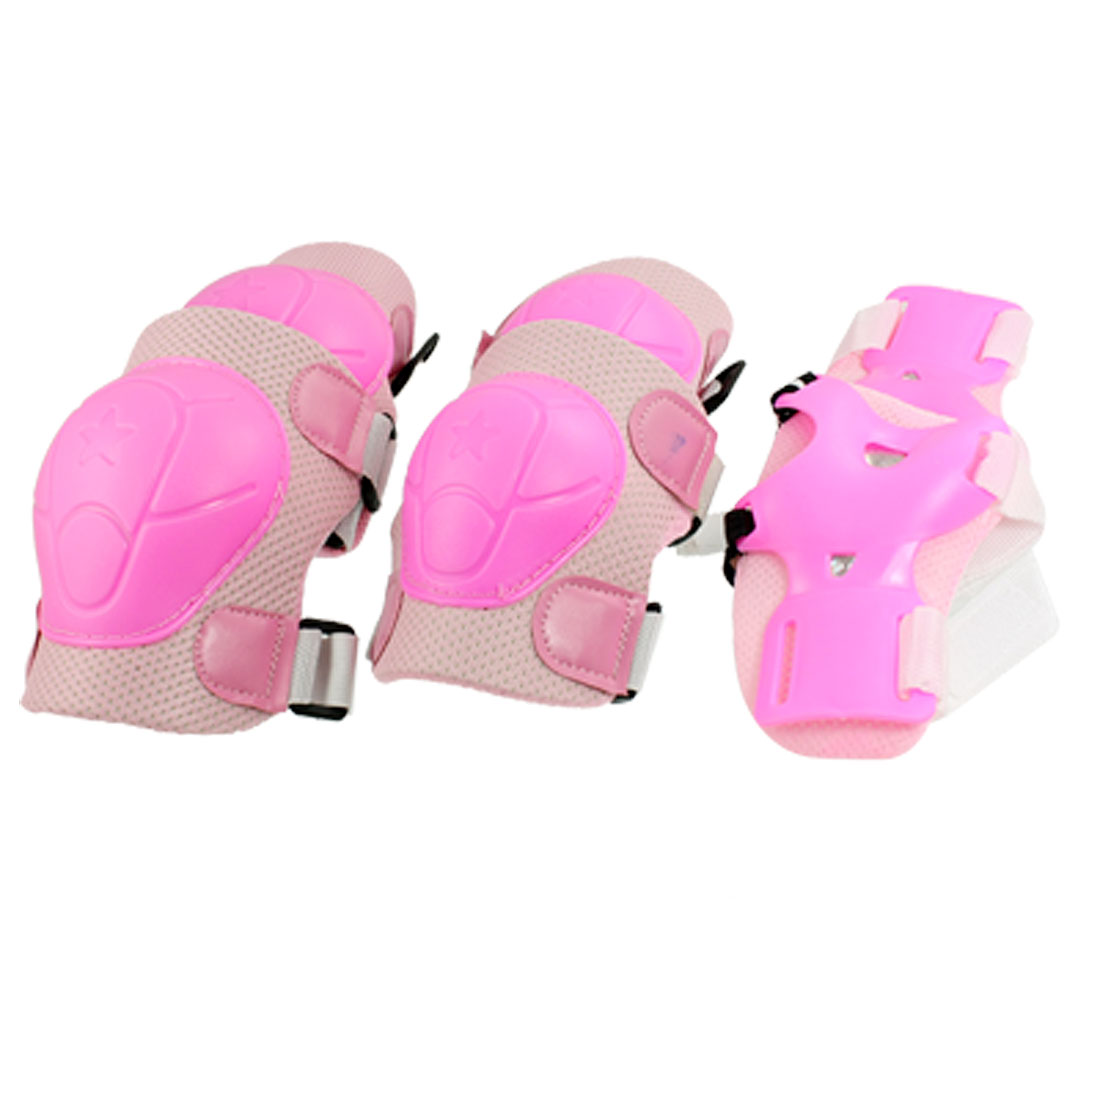 Children Outdoor Activities Gear Knee Elbow Pads Wrist Support Protector Set Pink